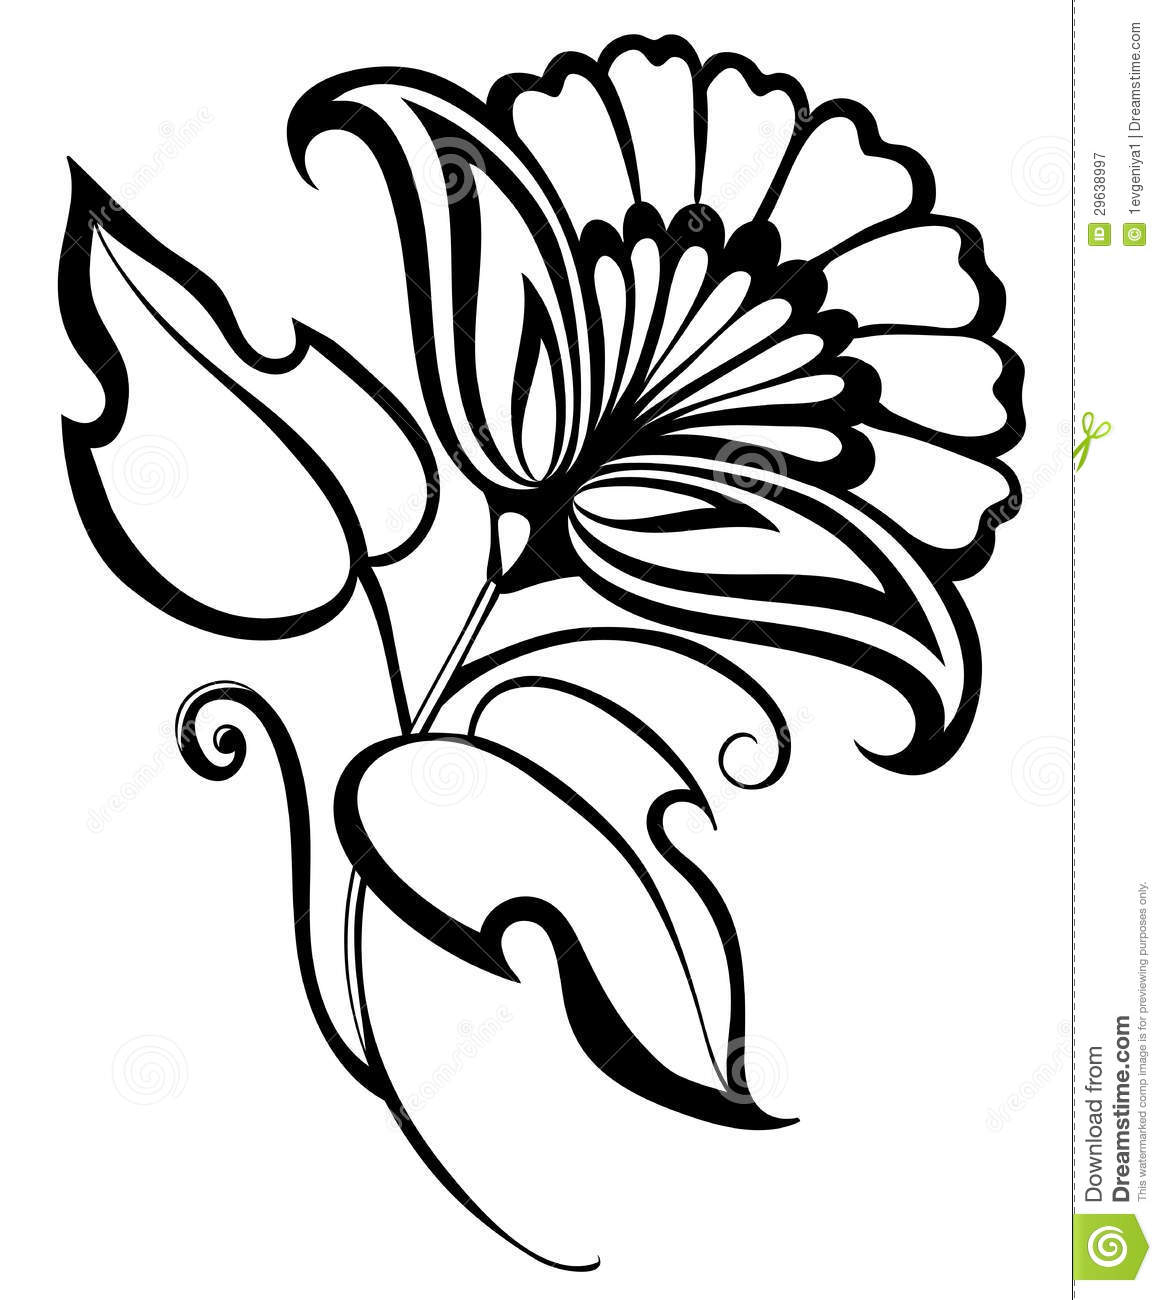 Black and white flower drawing free download best black and white 1162x1300 black white flower drawing simple rose drawings in black mightylinksfo